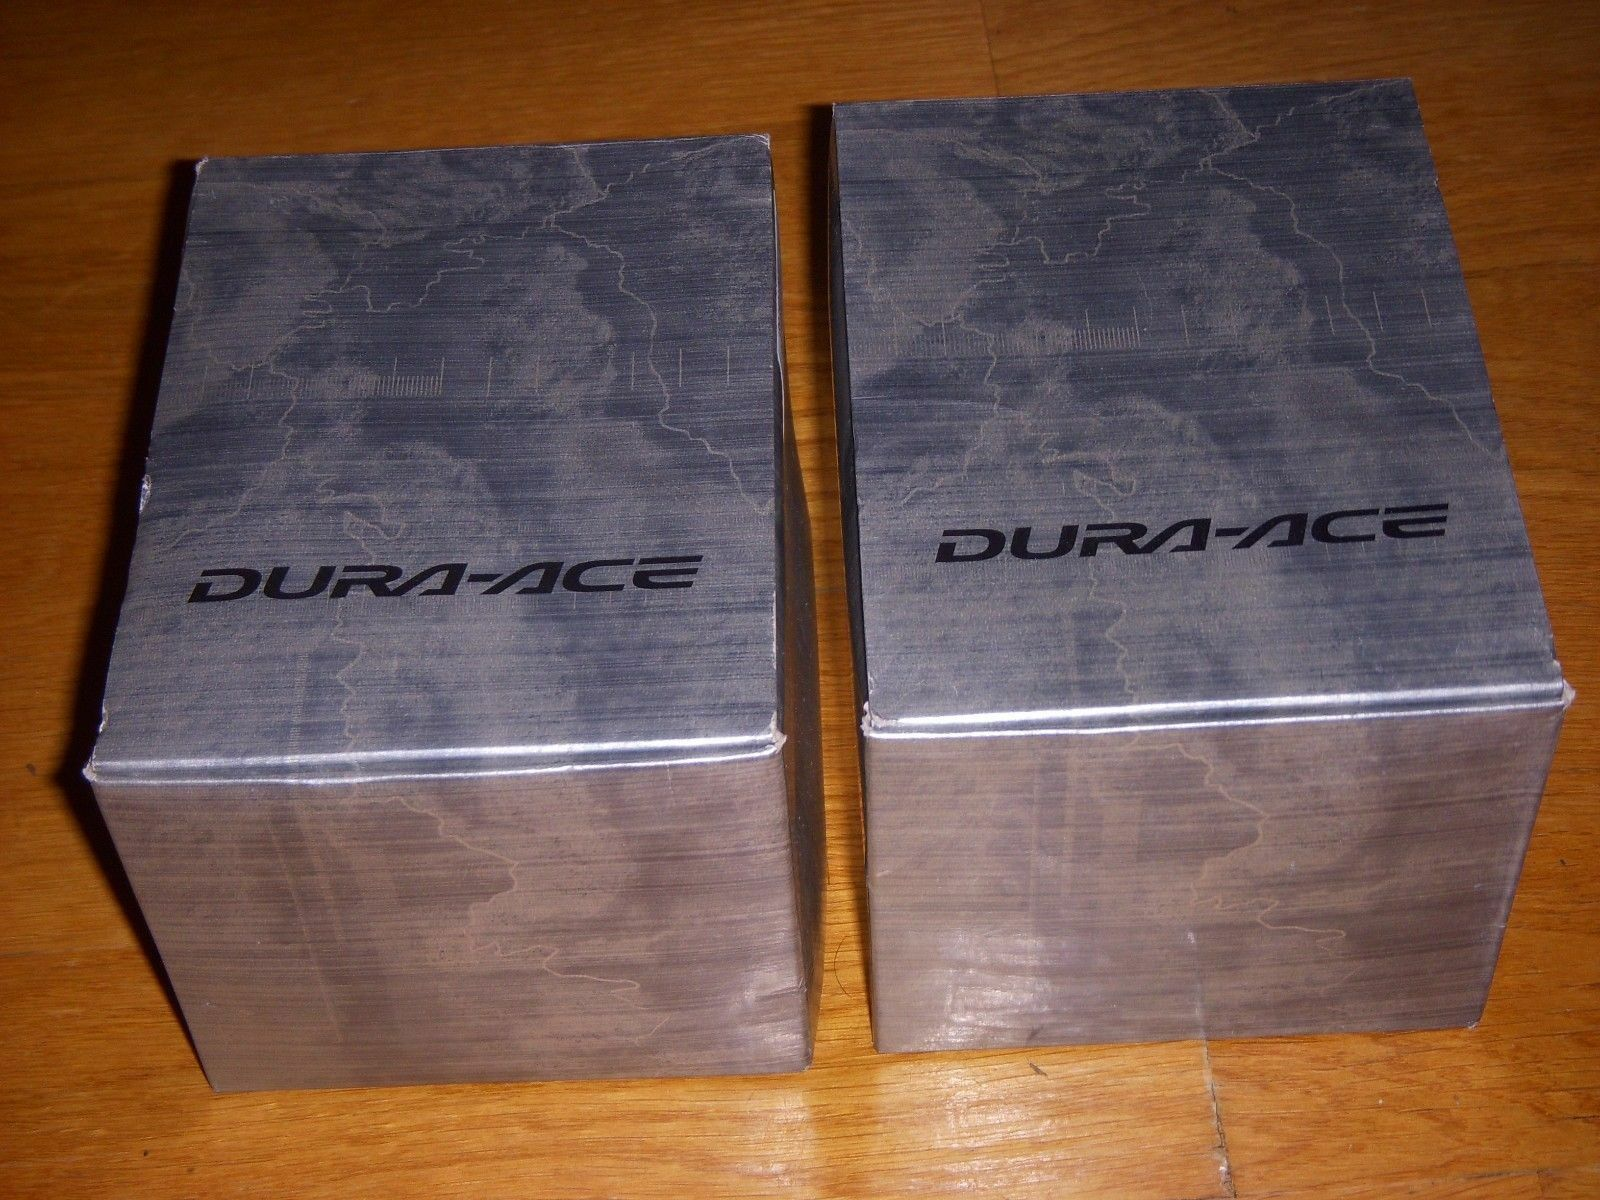 SHIMANO DURA-ACE BR  7800(F-R) Brakes Calipers  factory outlet